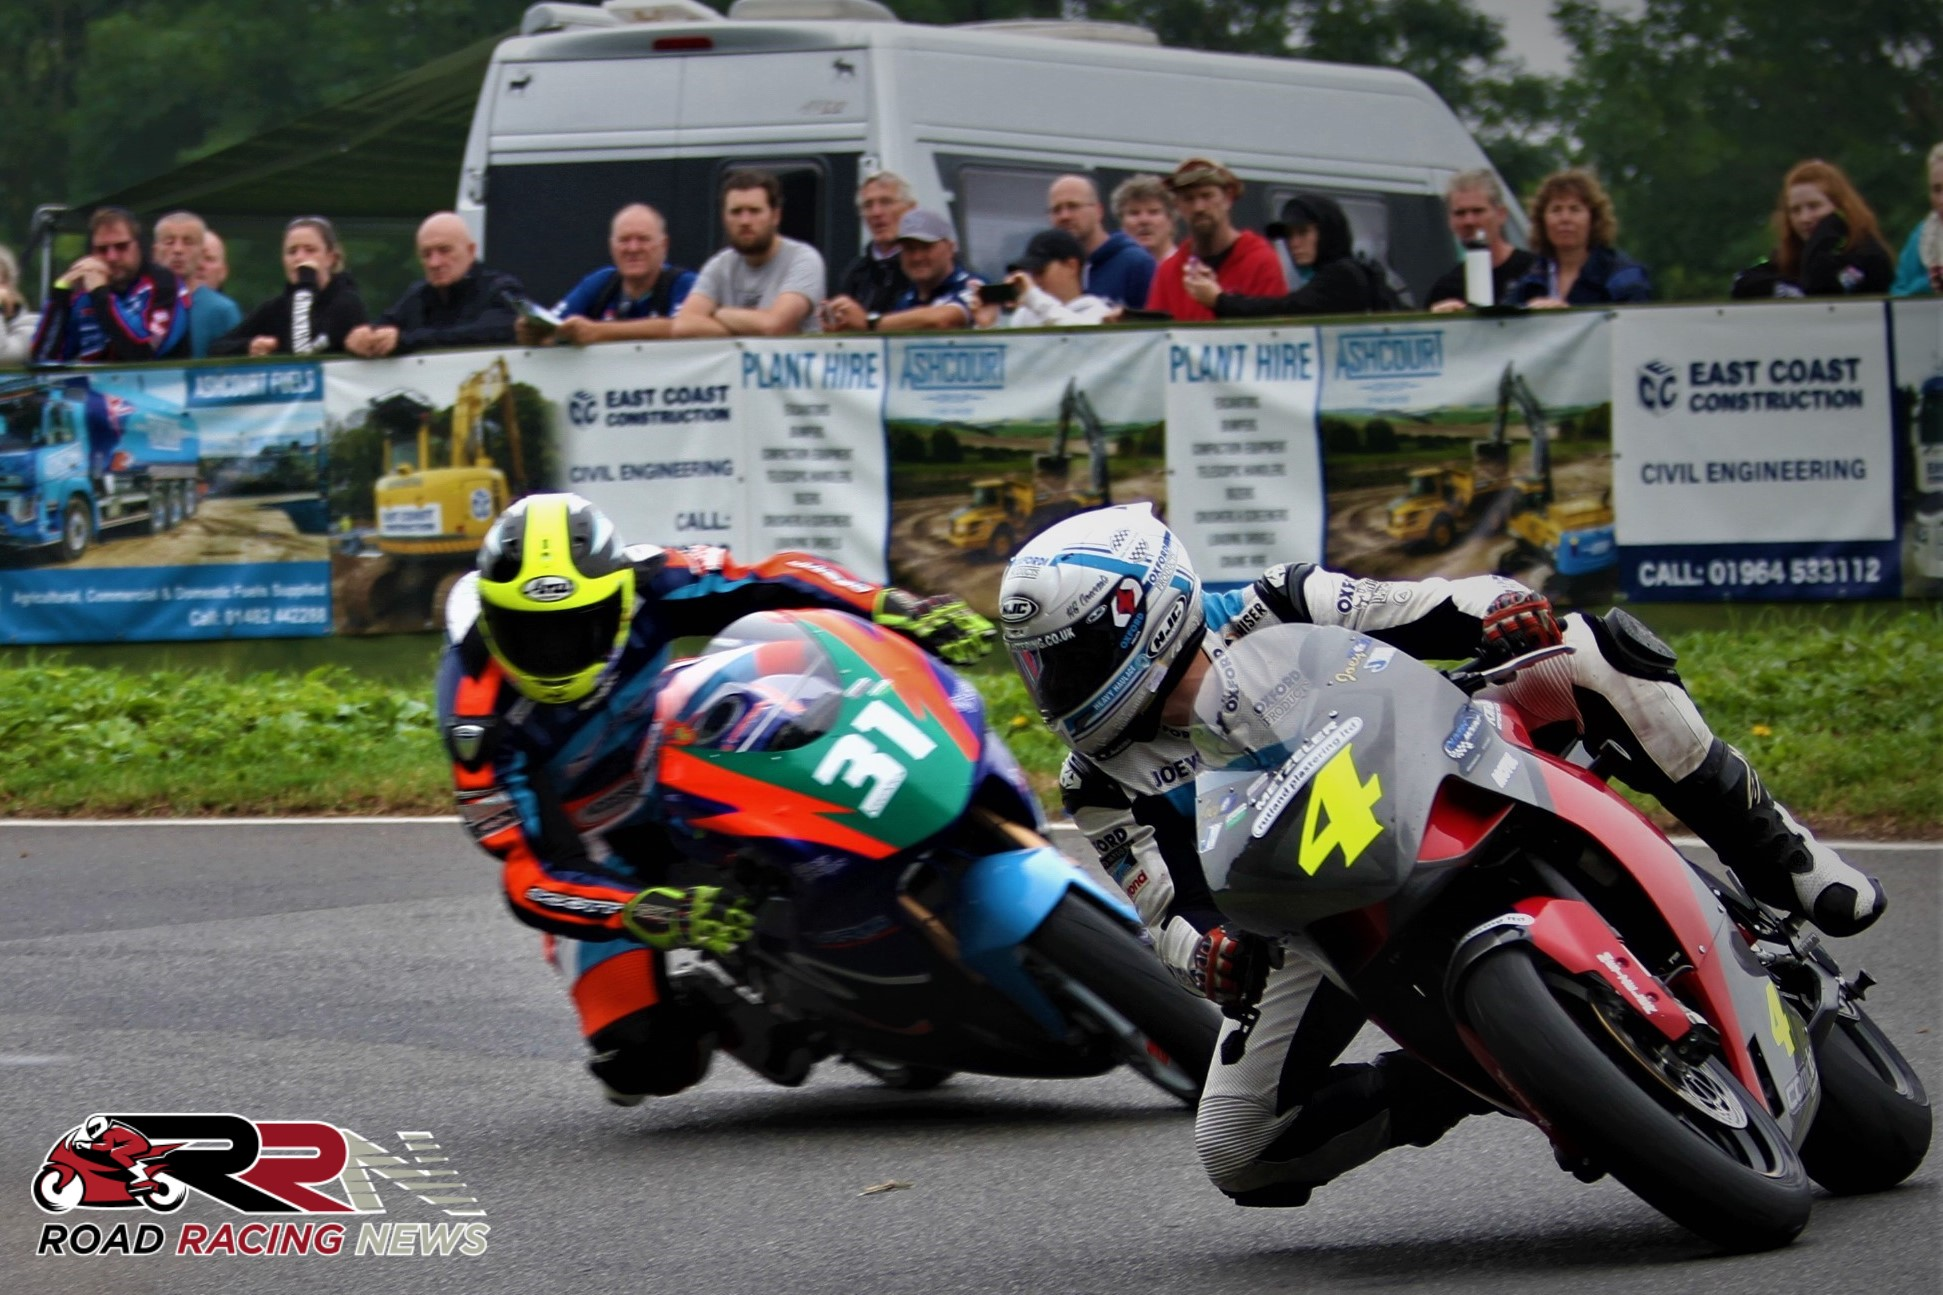 Barry Sheene Classic: Day 2 Wrap Up